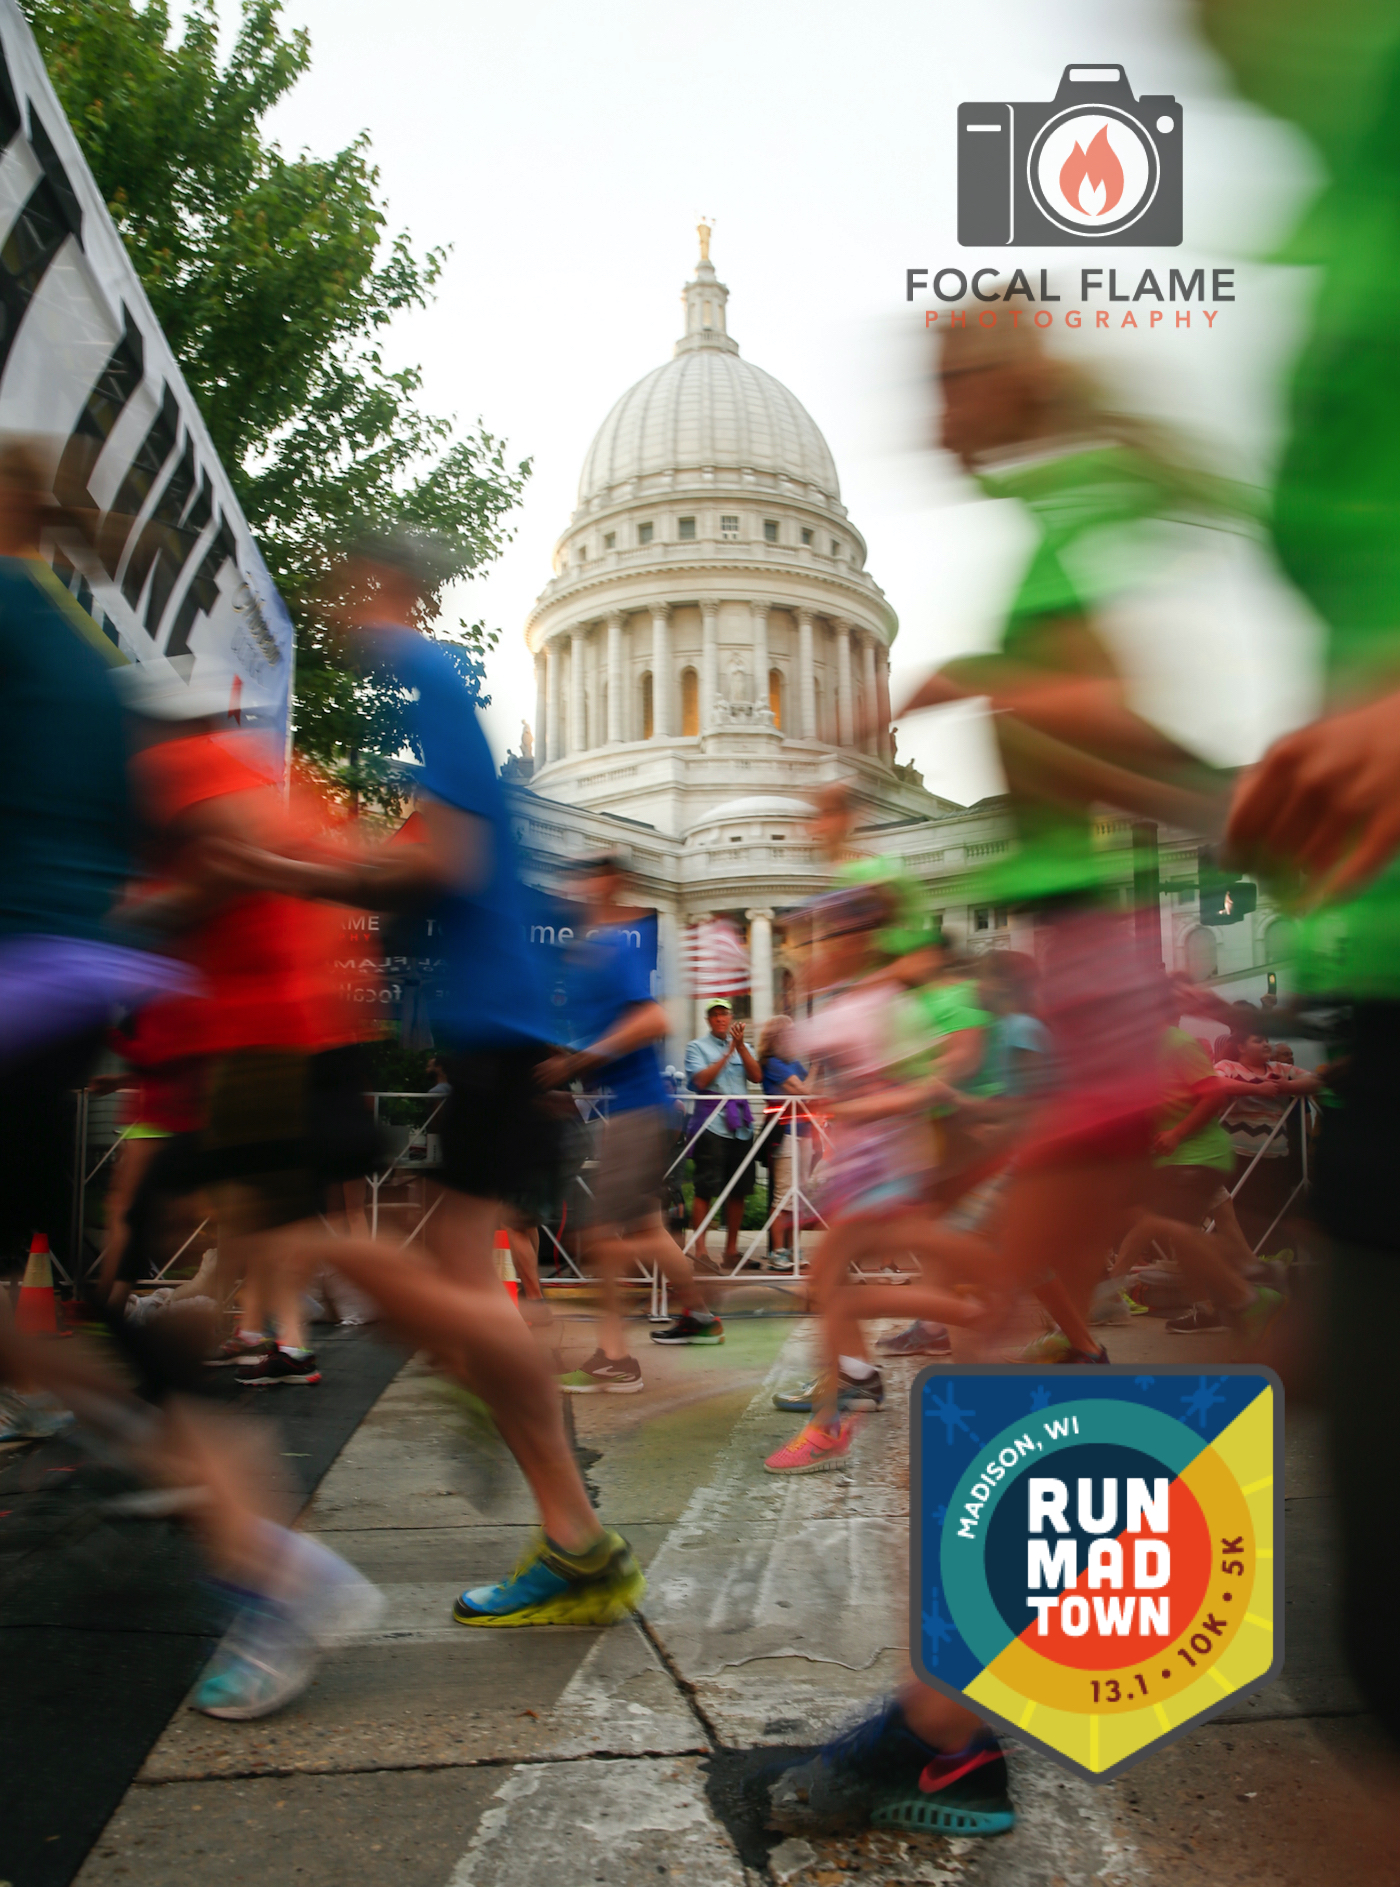 Run Madtown: What's In a Name? — Focal Flame Photography, Madison WI